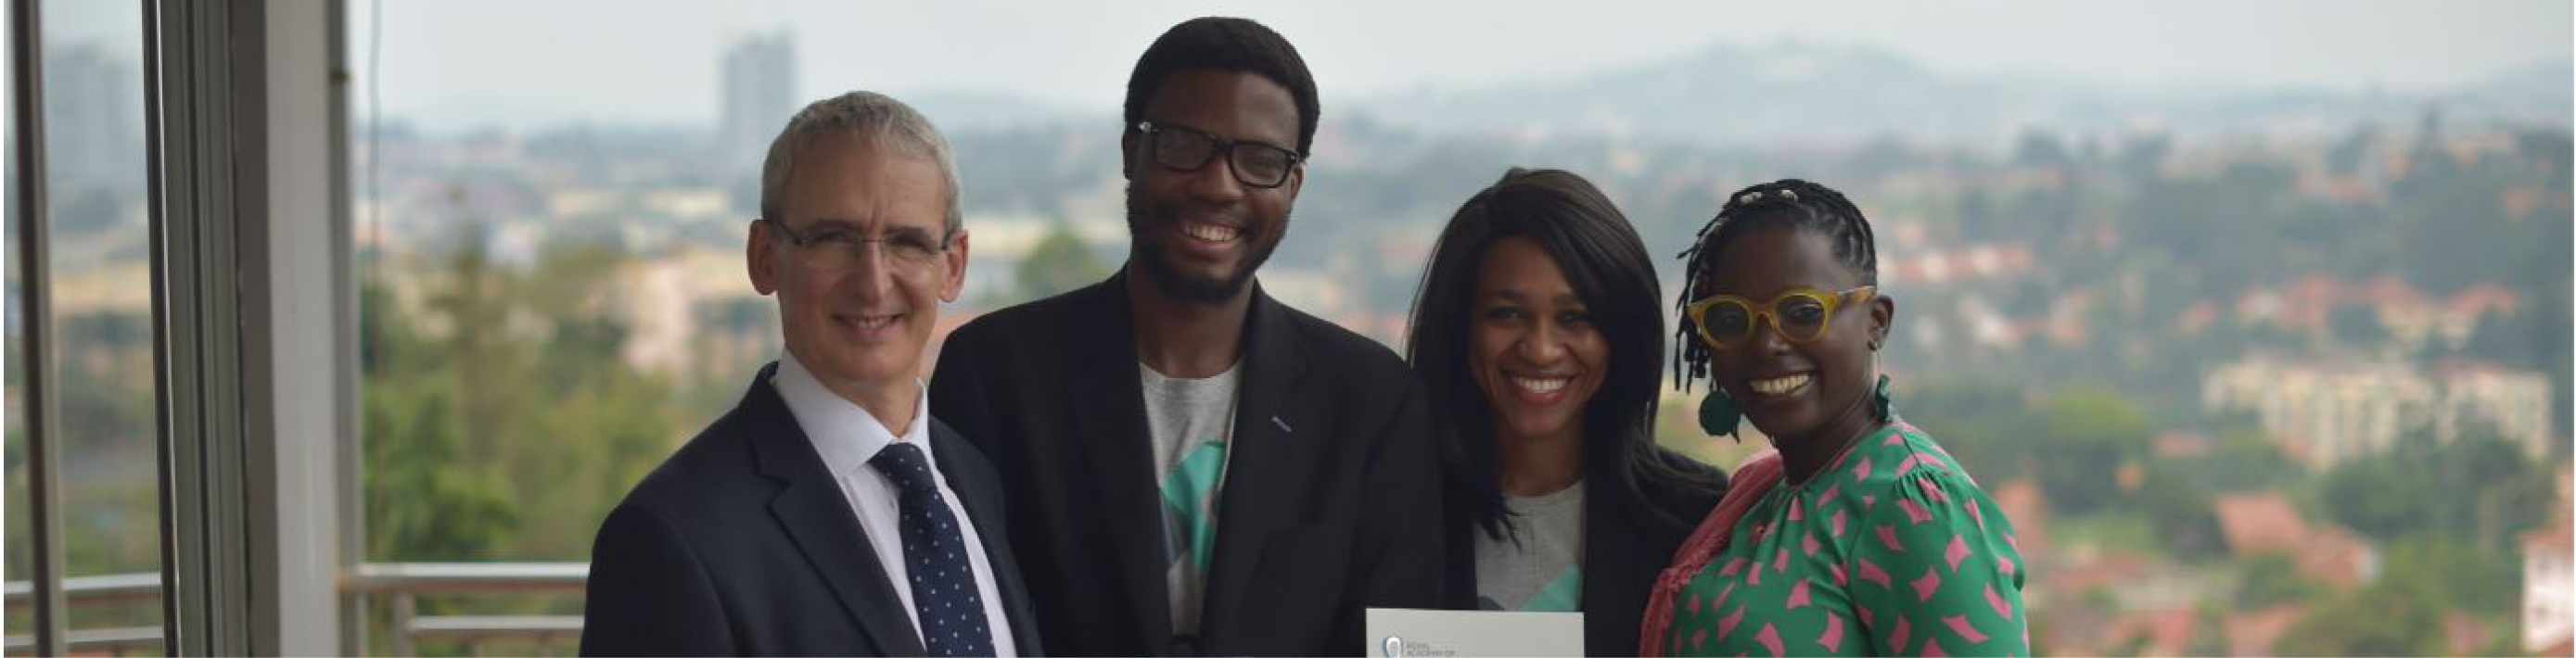 SMART MEDICINE DISPENSER THAT COULD IMPROVE ACCESS TO TREATMENTS FOR MILLIONS WINS THE AFRICA PRIZE FOR ENGINEERING INNOVATION